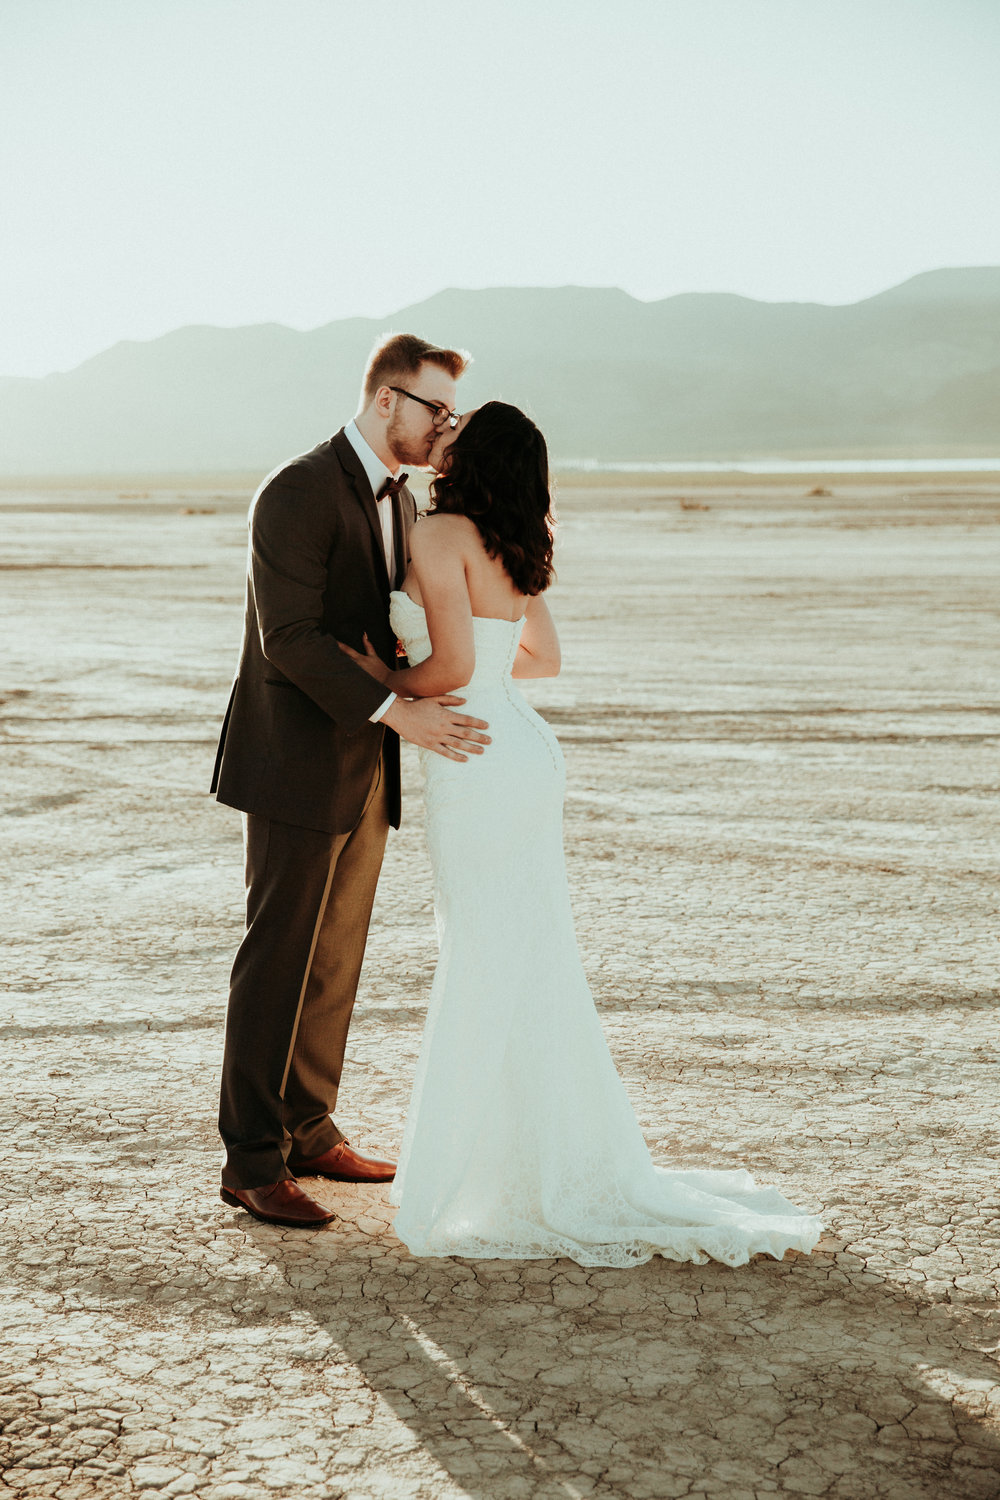 Las Vegas Wedding - Daniel + Jessica - Henderson Wedding Photographer - Seattle Wedding Photographer - Oregon Elopement Photographer - First Look